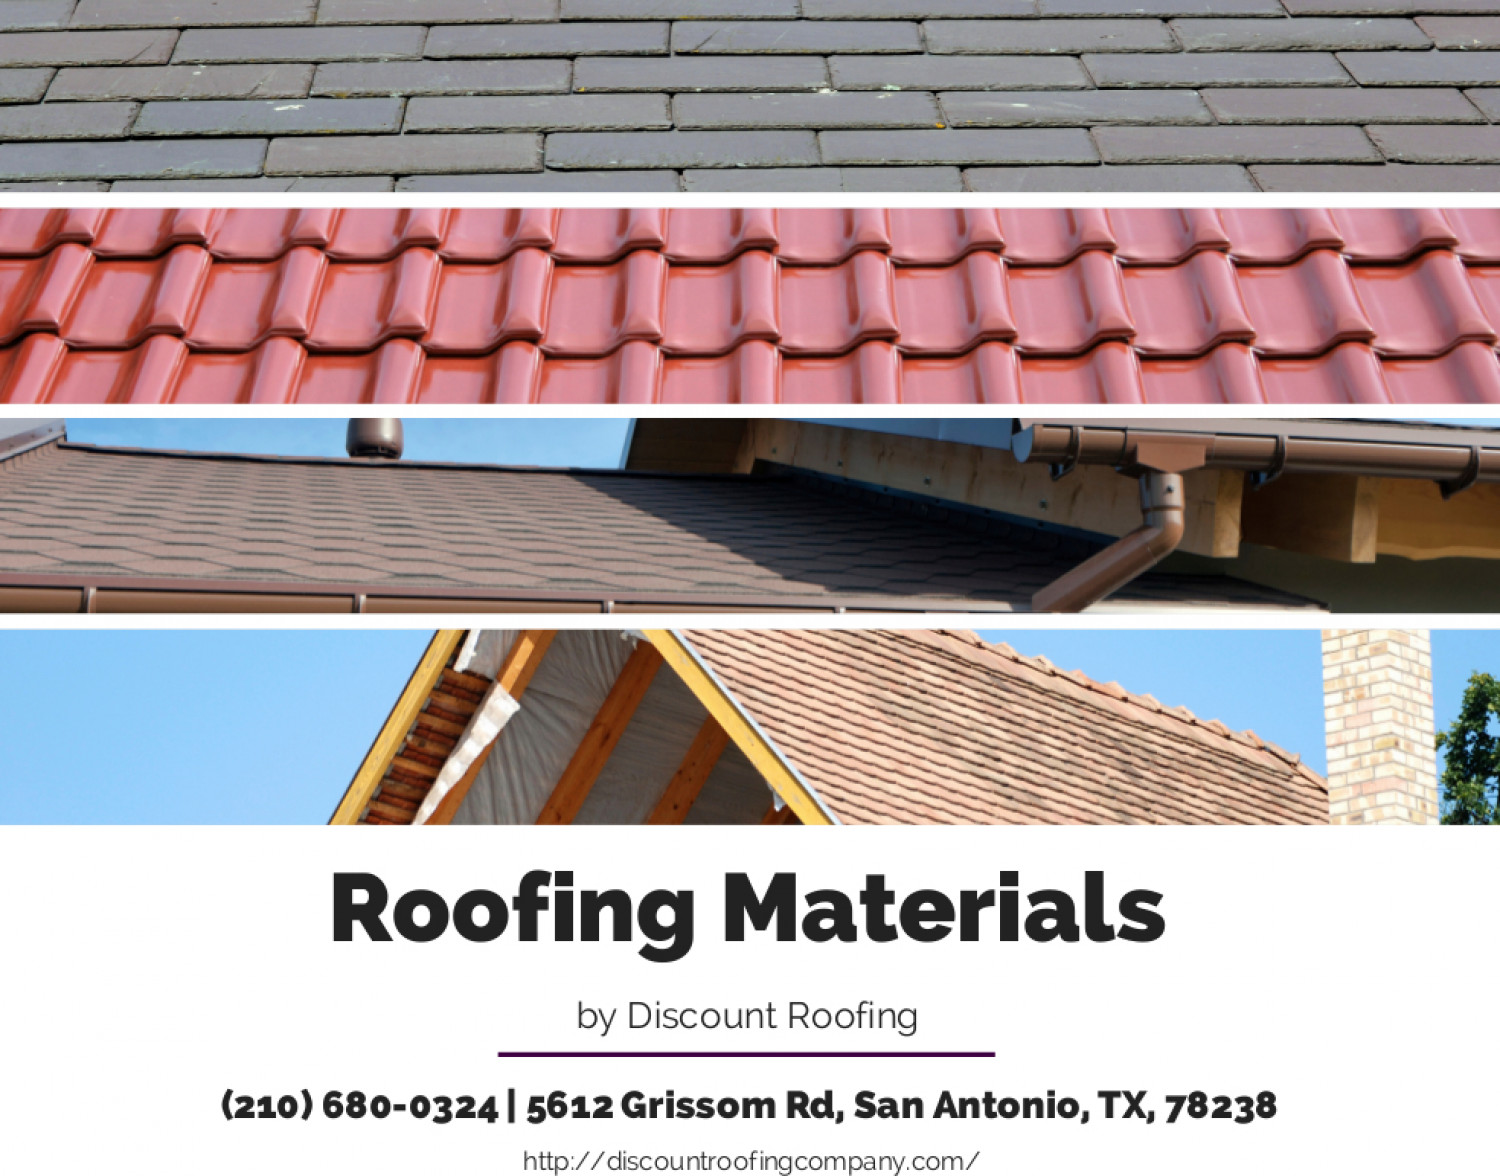 Roofing Materials Infographic